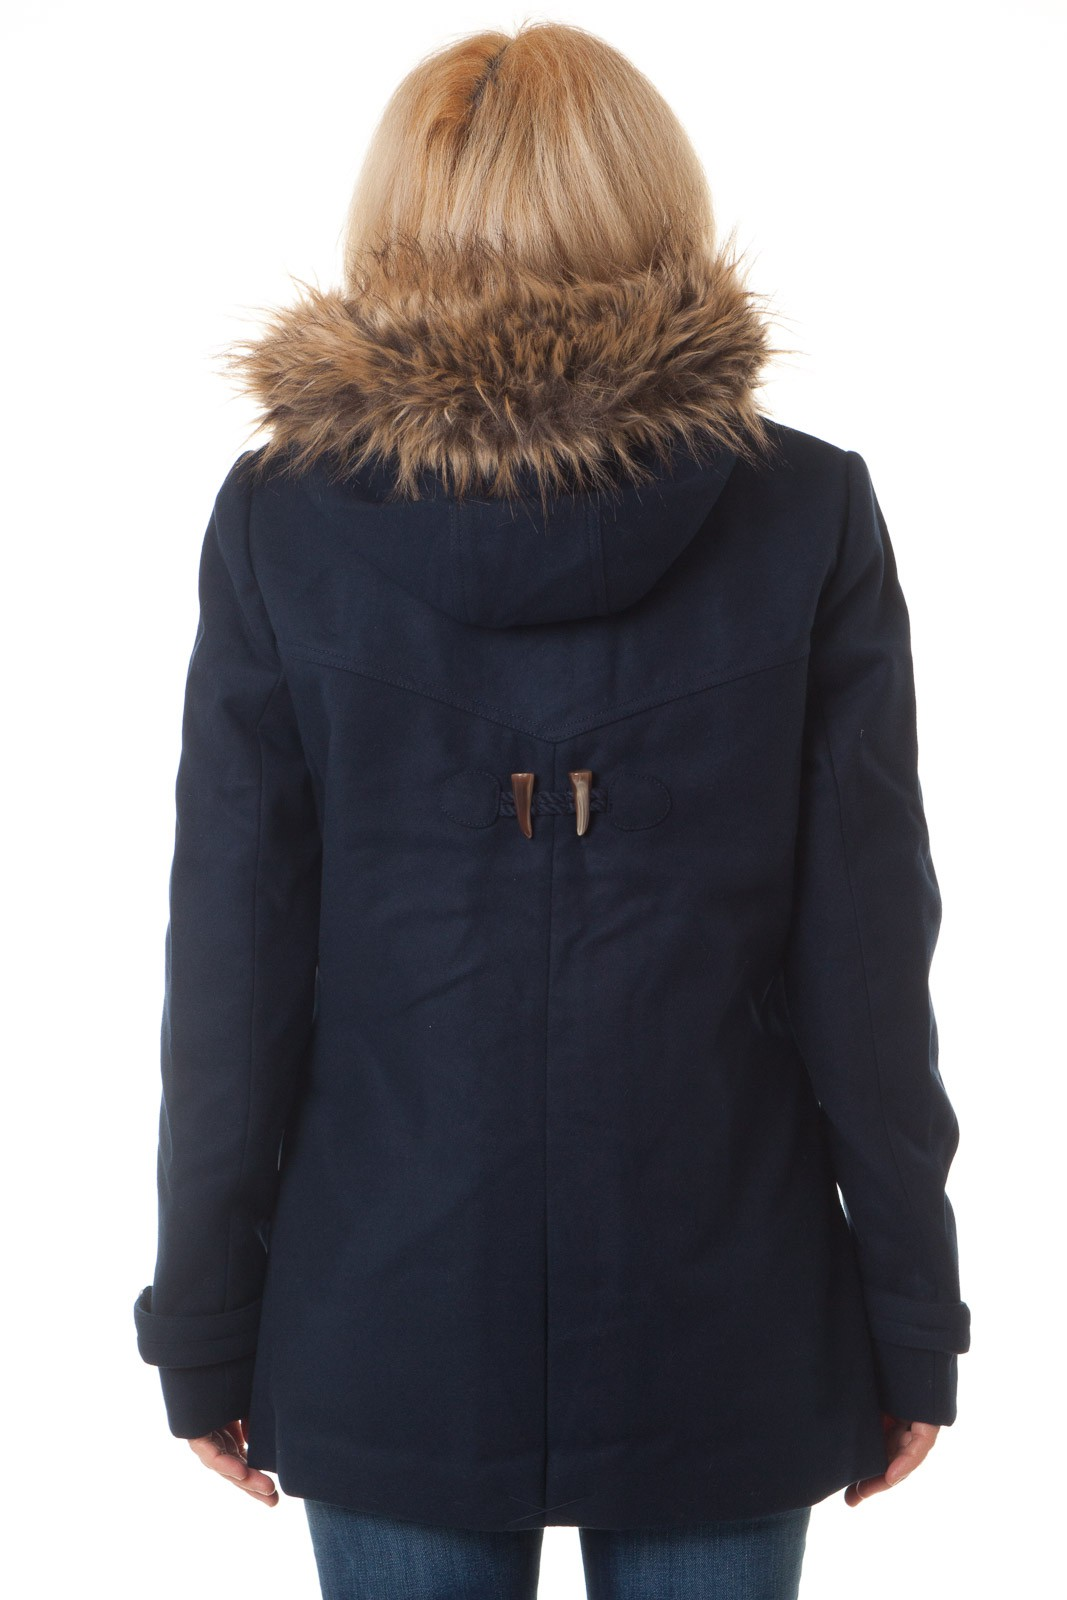 tom tailor damen jacke dufflecoat navy damen jacken